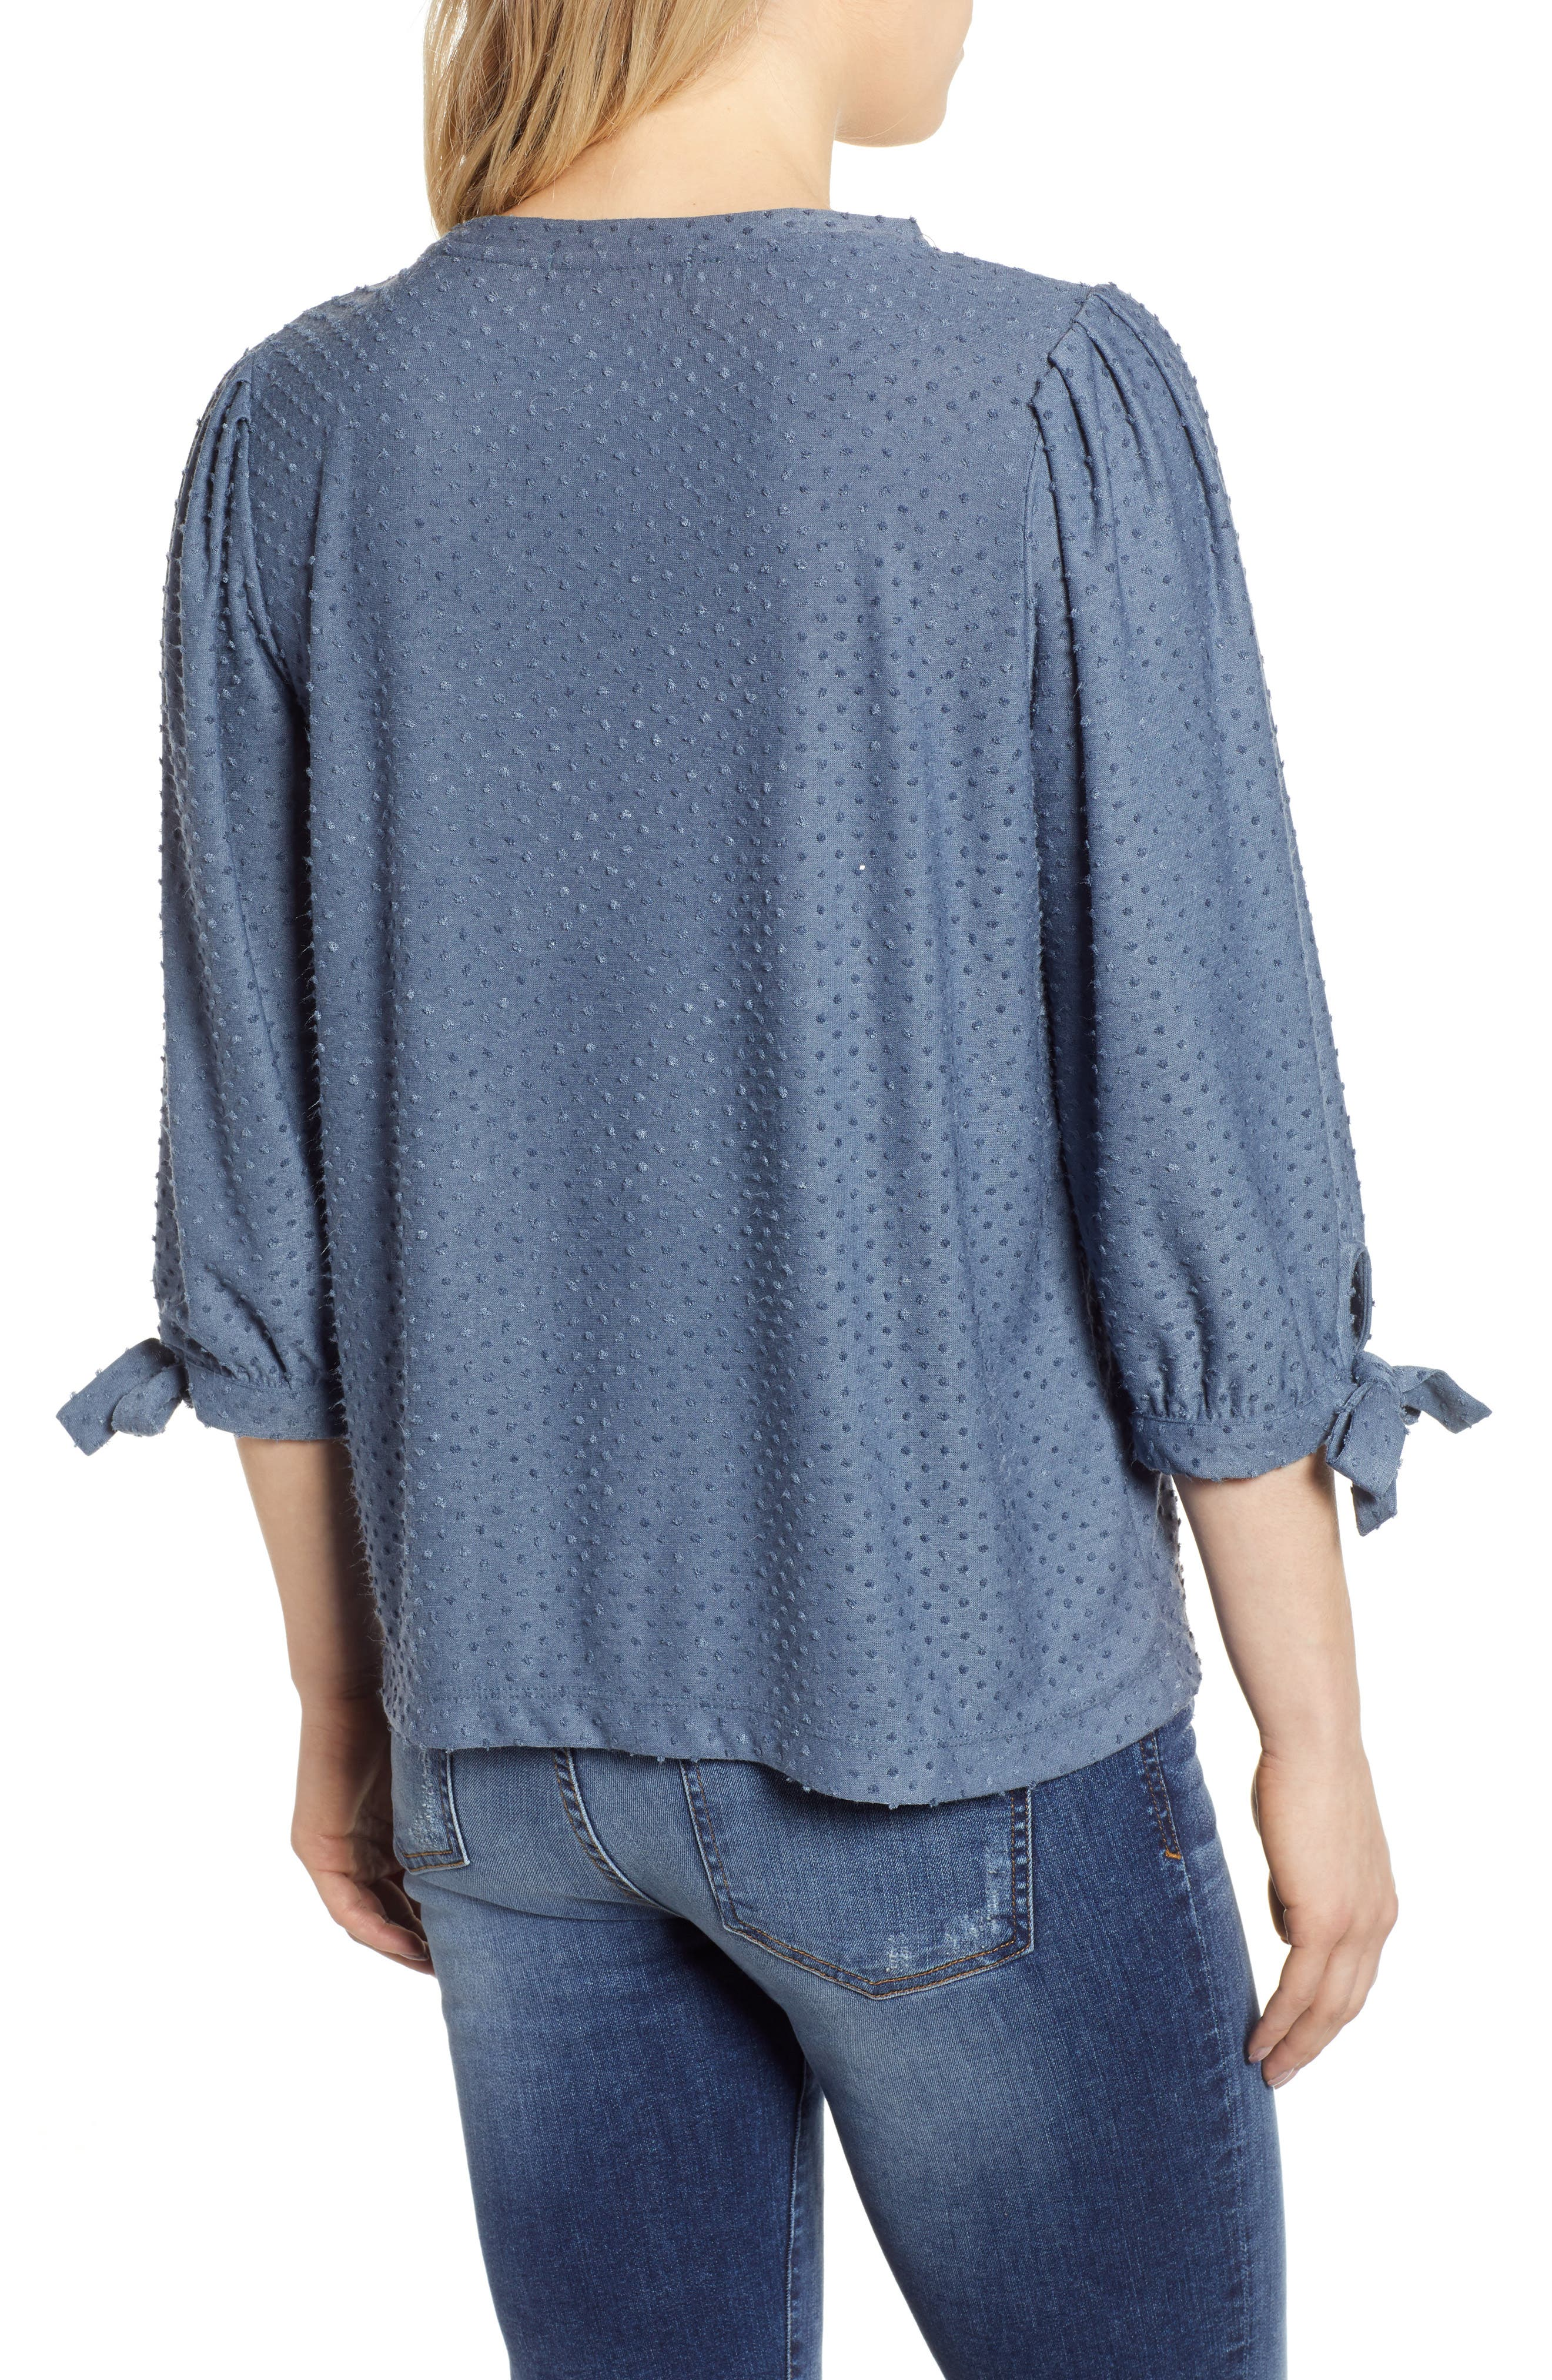 GIBSON,                             x International Women's Day Ruthie Clip Dot Tie Sleeve Blouse,                             Alternate thumbnail 2, color,                             DENIM